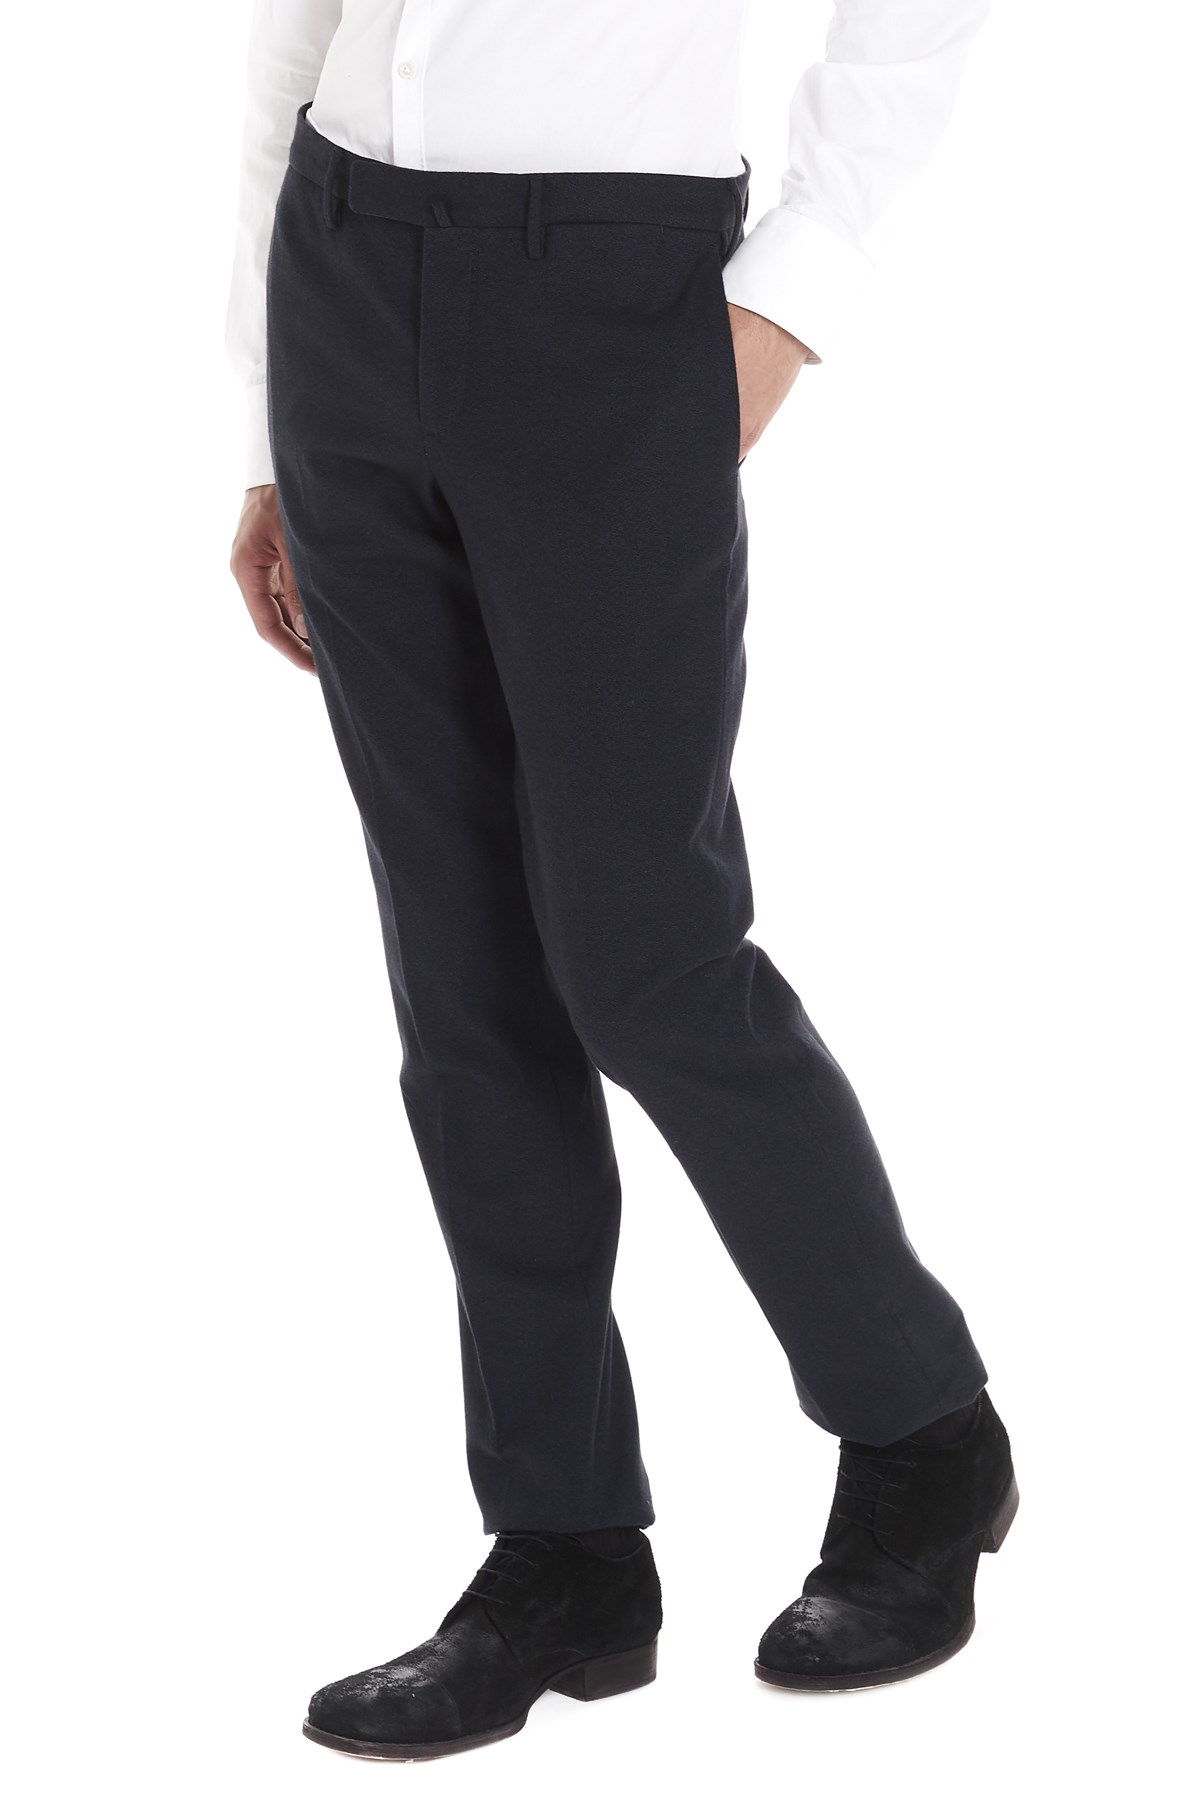 Incotex Thight Fit Pants Available On Julian Fashion Com 97536